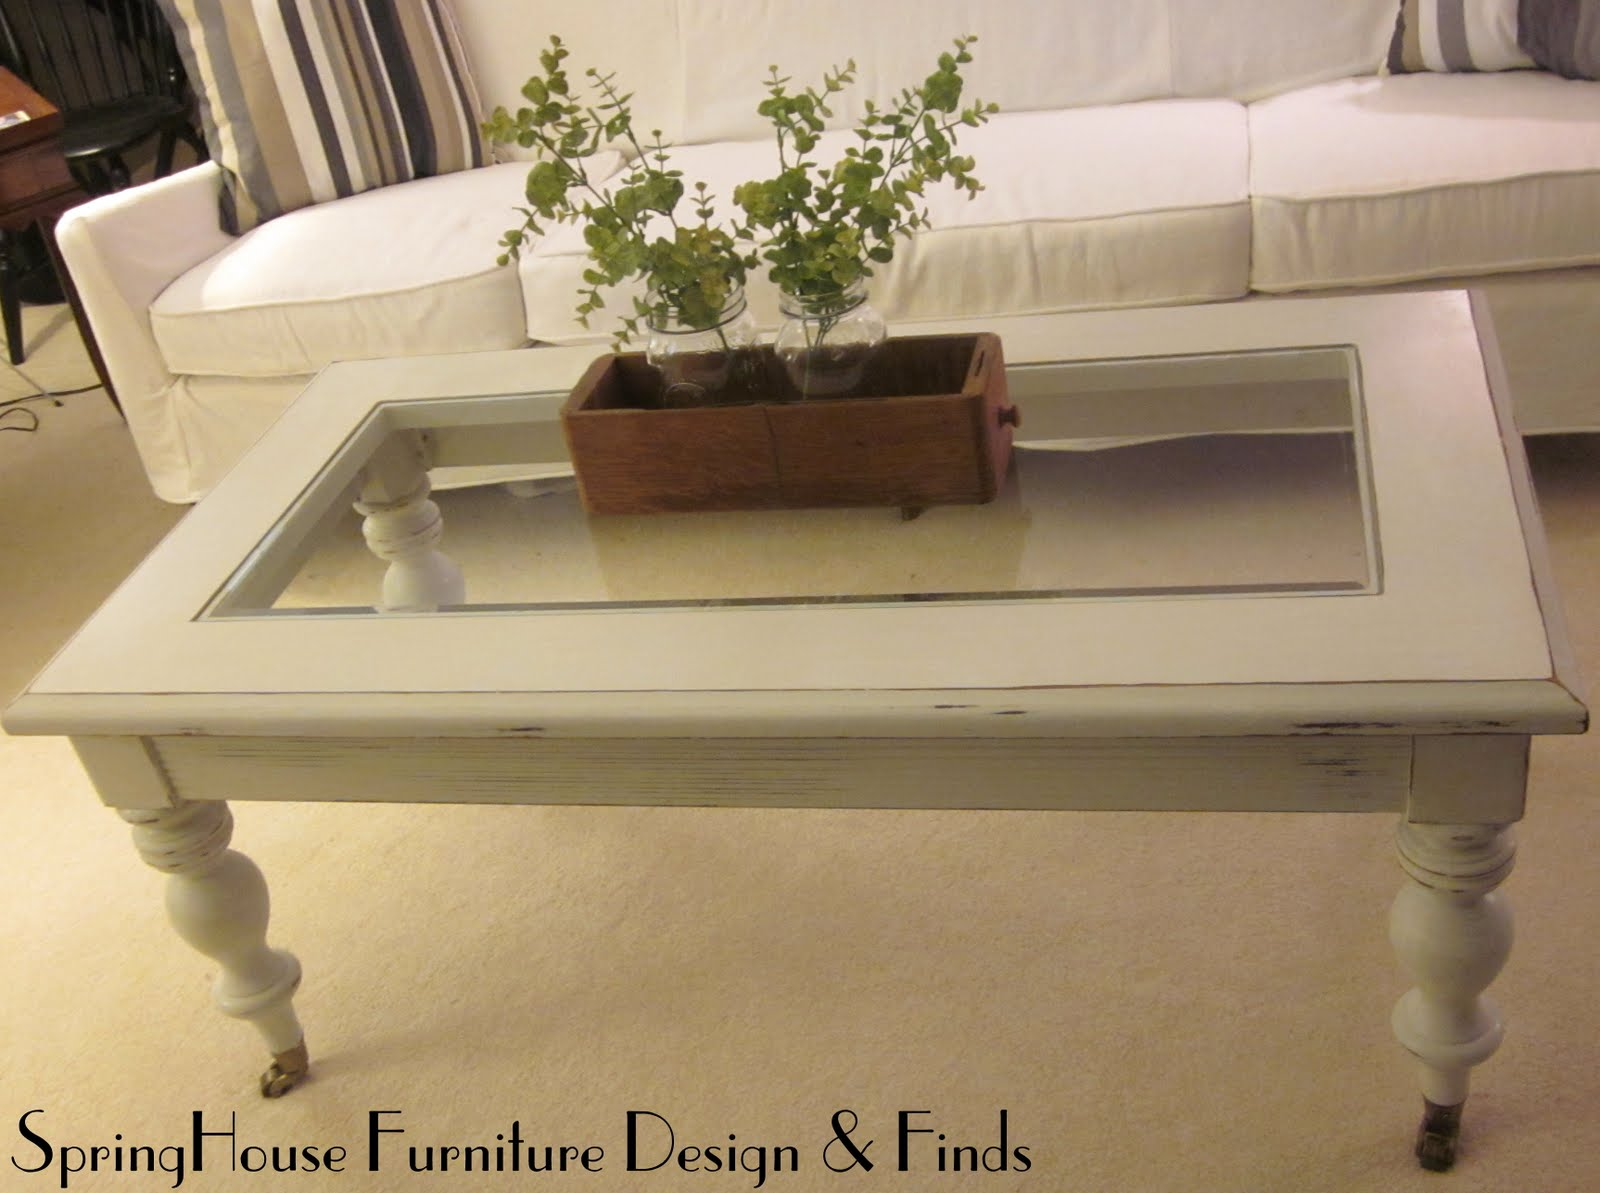 Springhouse Furniture Design Finds White Glass Top Coffee Table